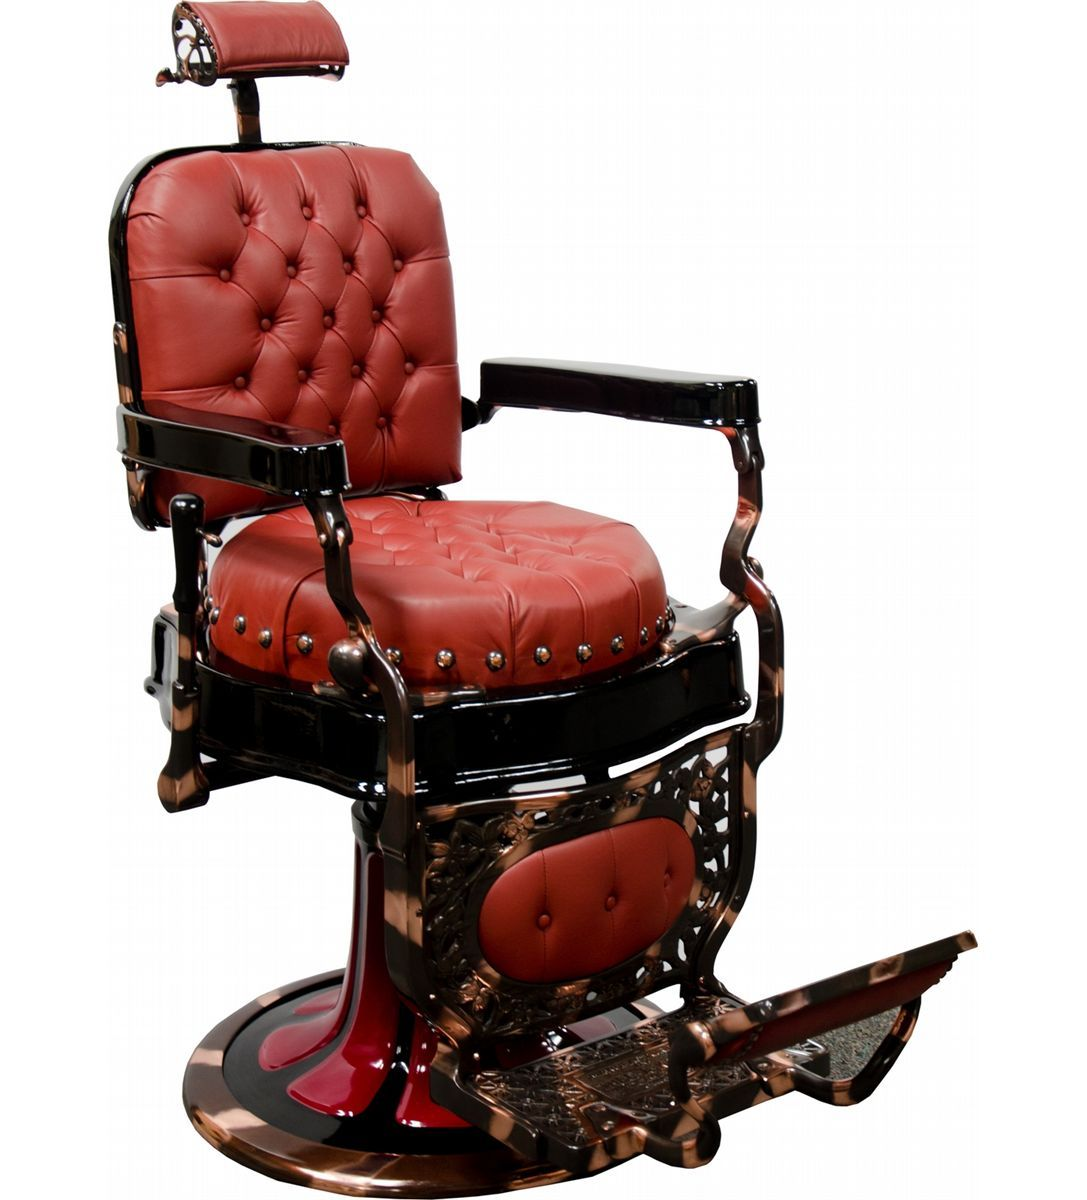 Best Vintage Barber Chairs Google Search Barber Shop Chairs 400 x 300